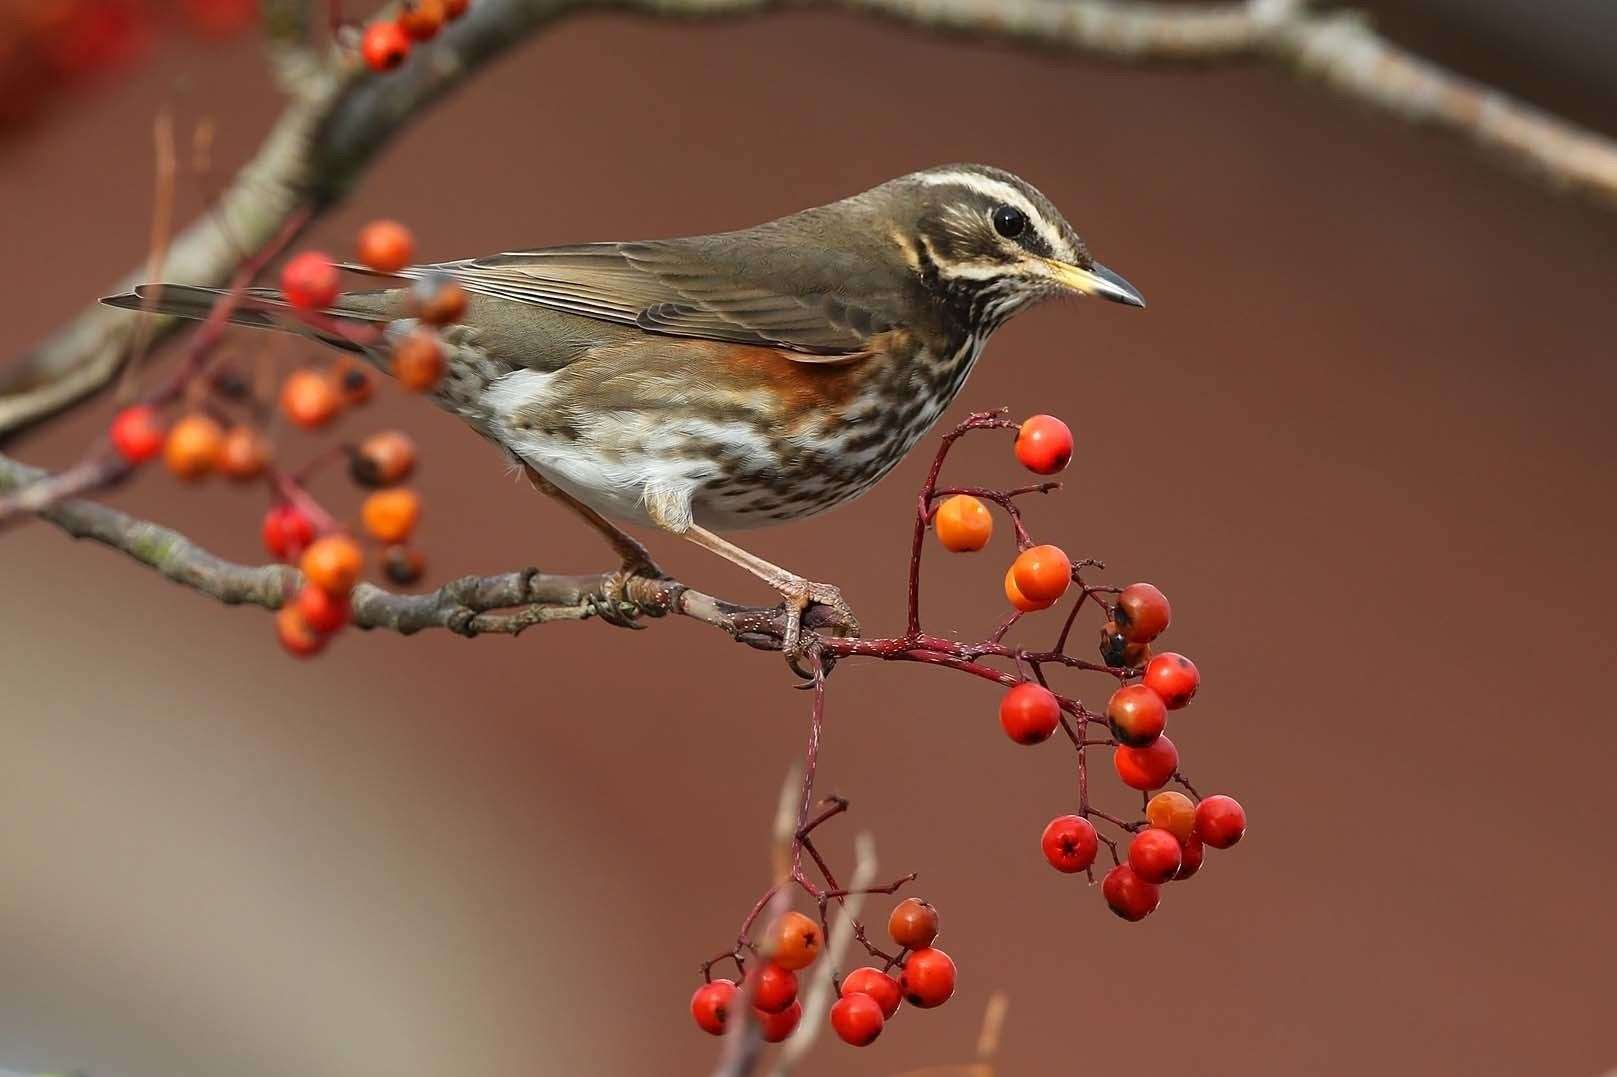 Redwings have been arriving in quite large numbers.